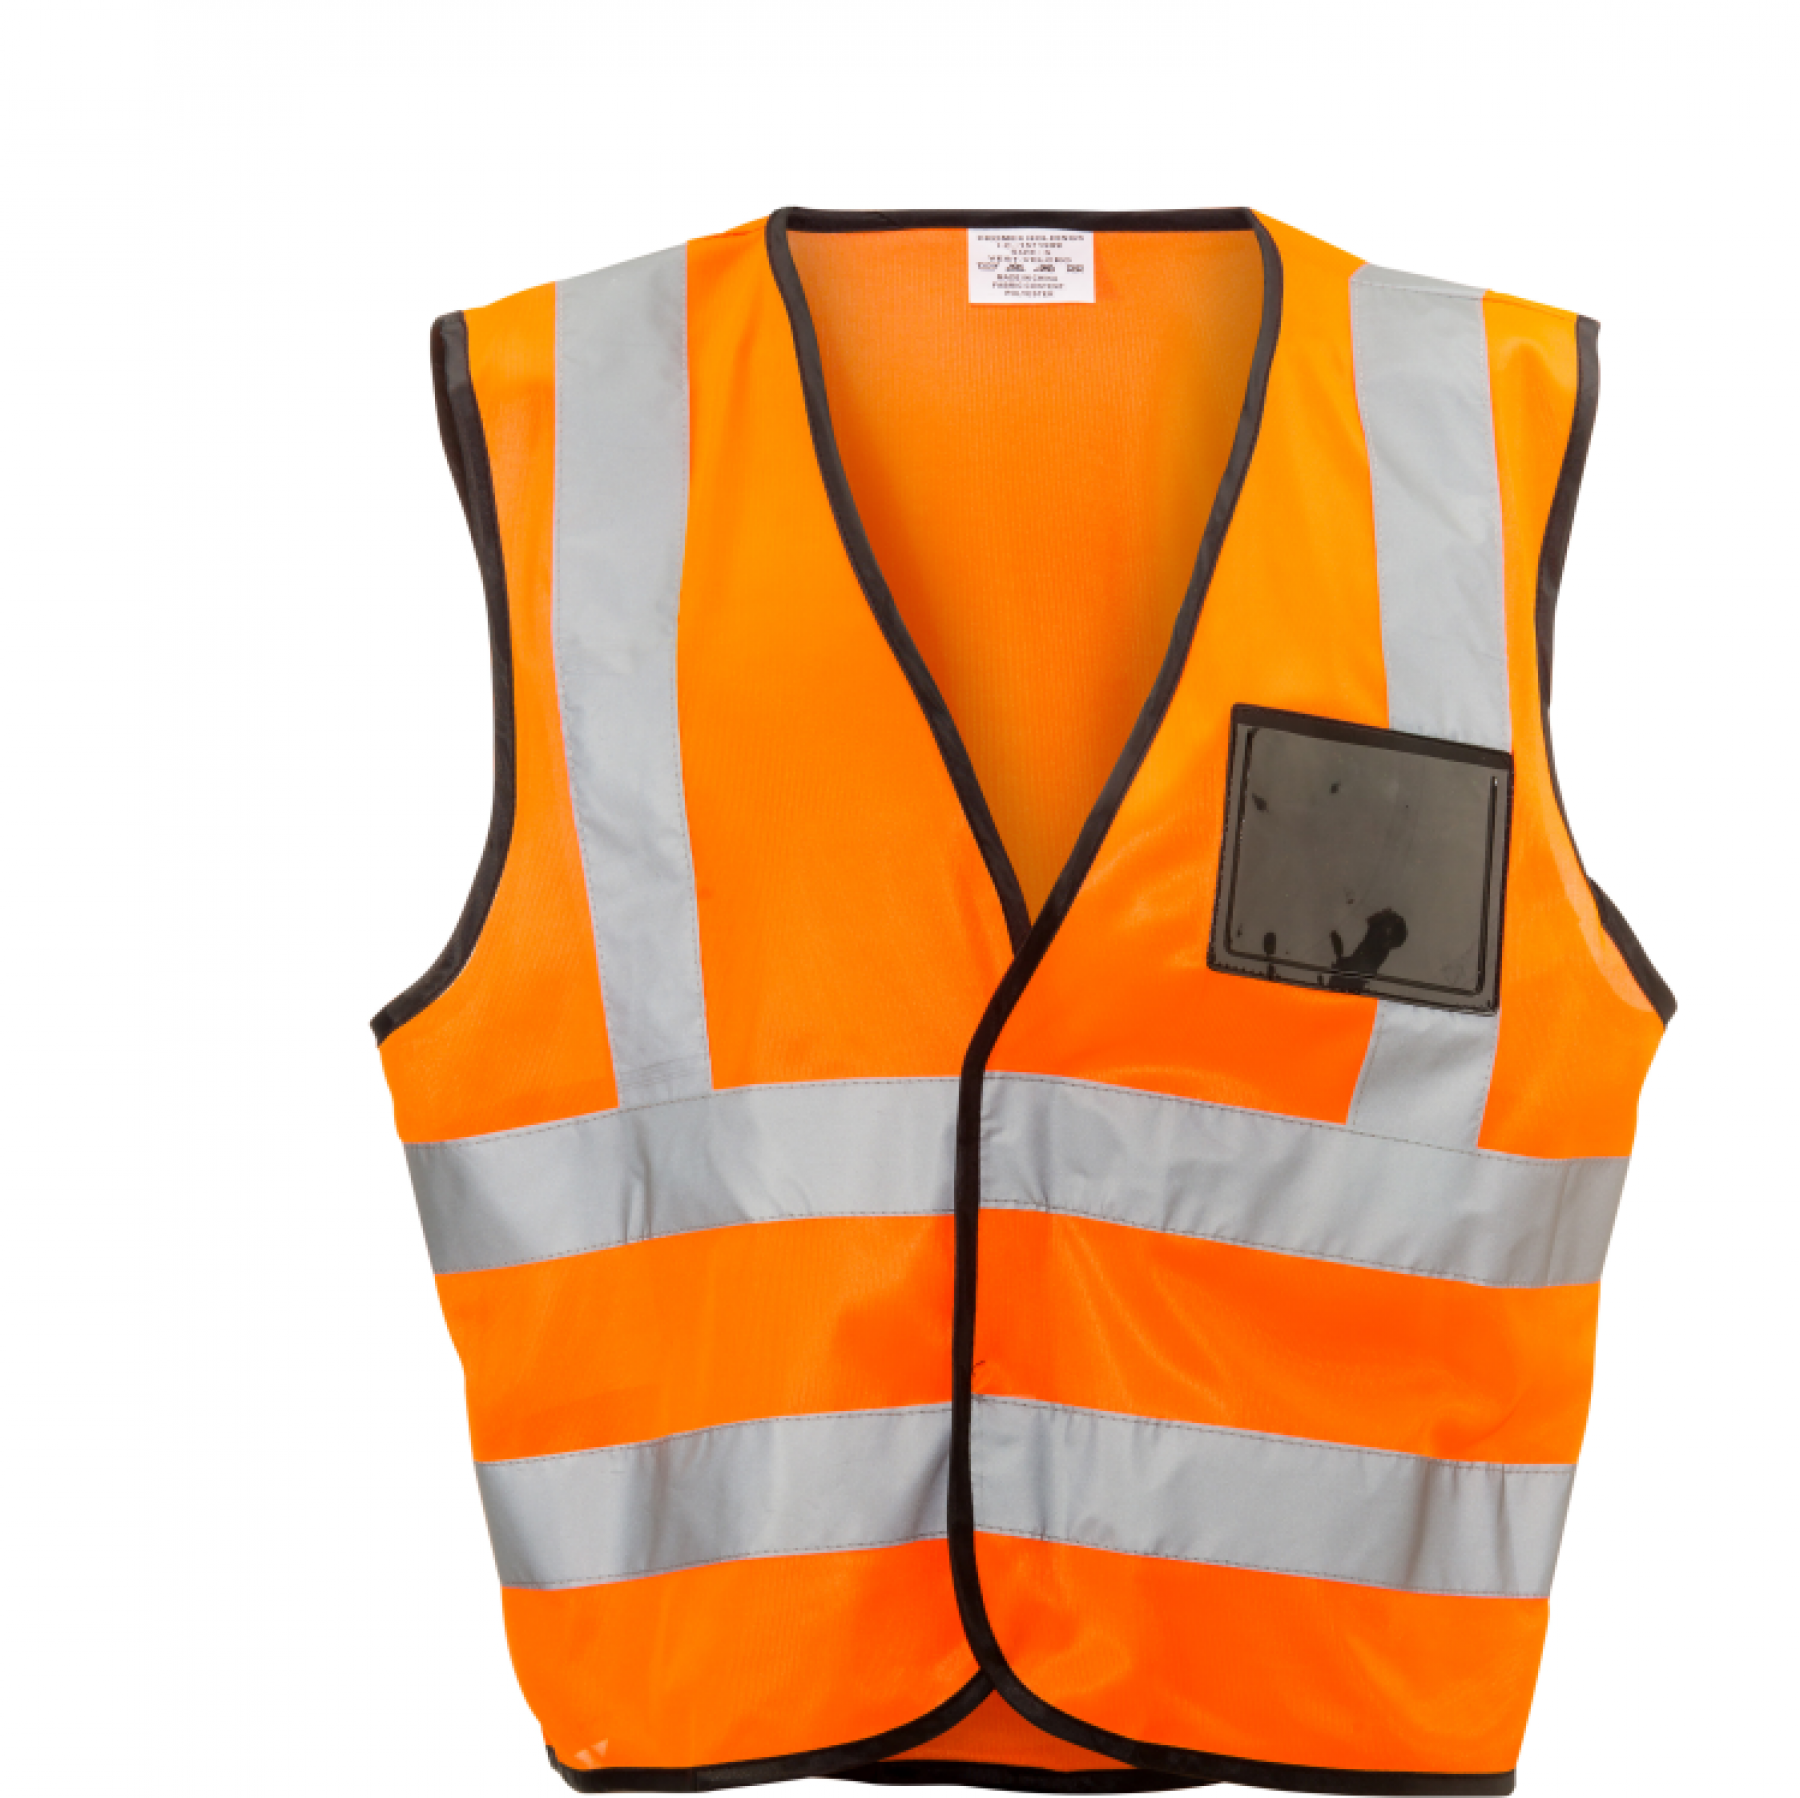 Orange Reflective Vest, Velcro, Id Pouch Large